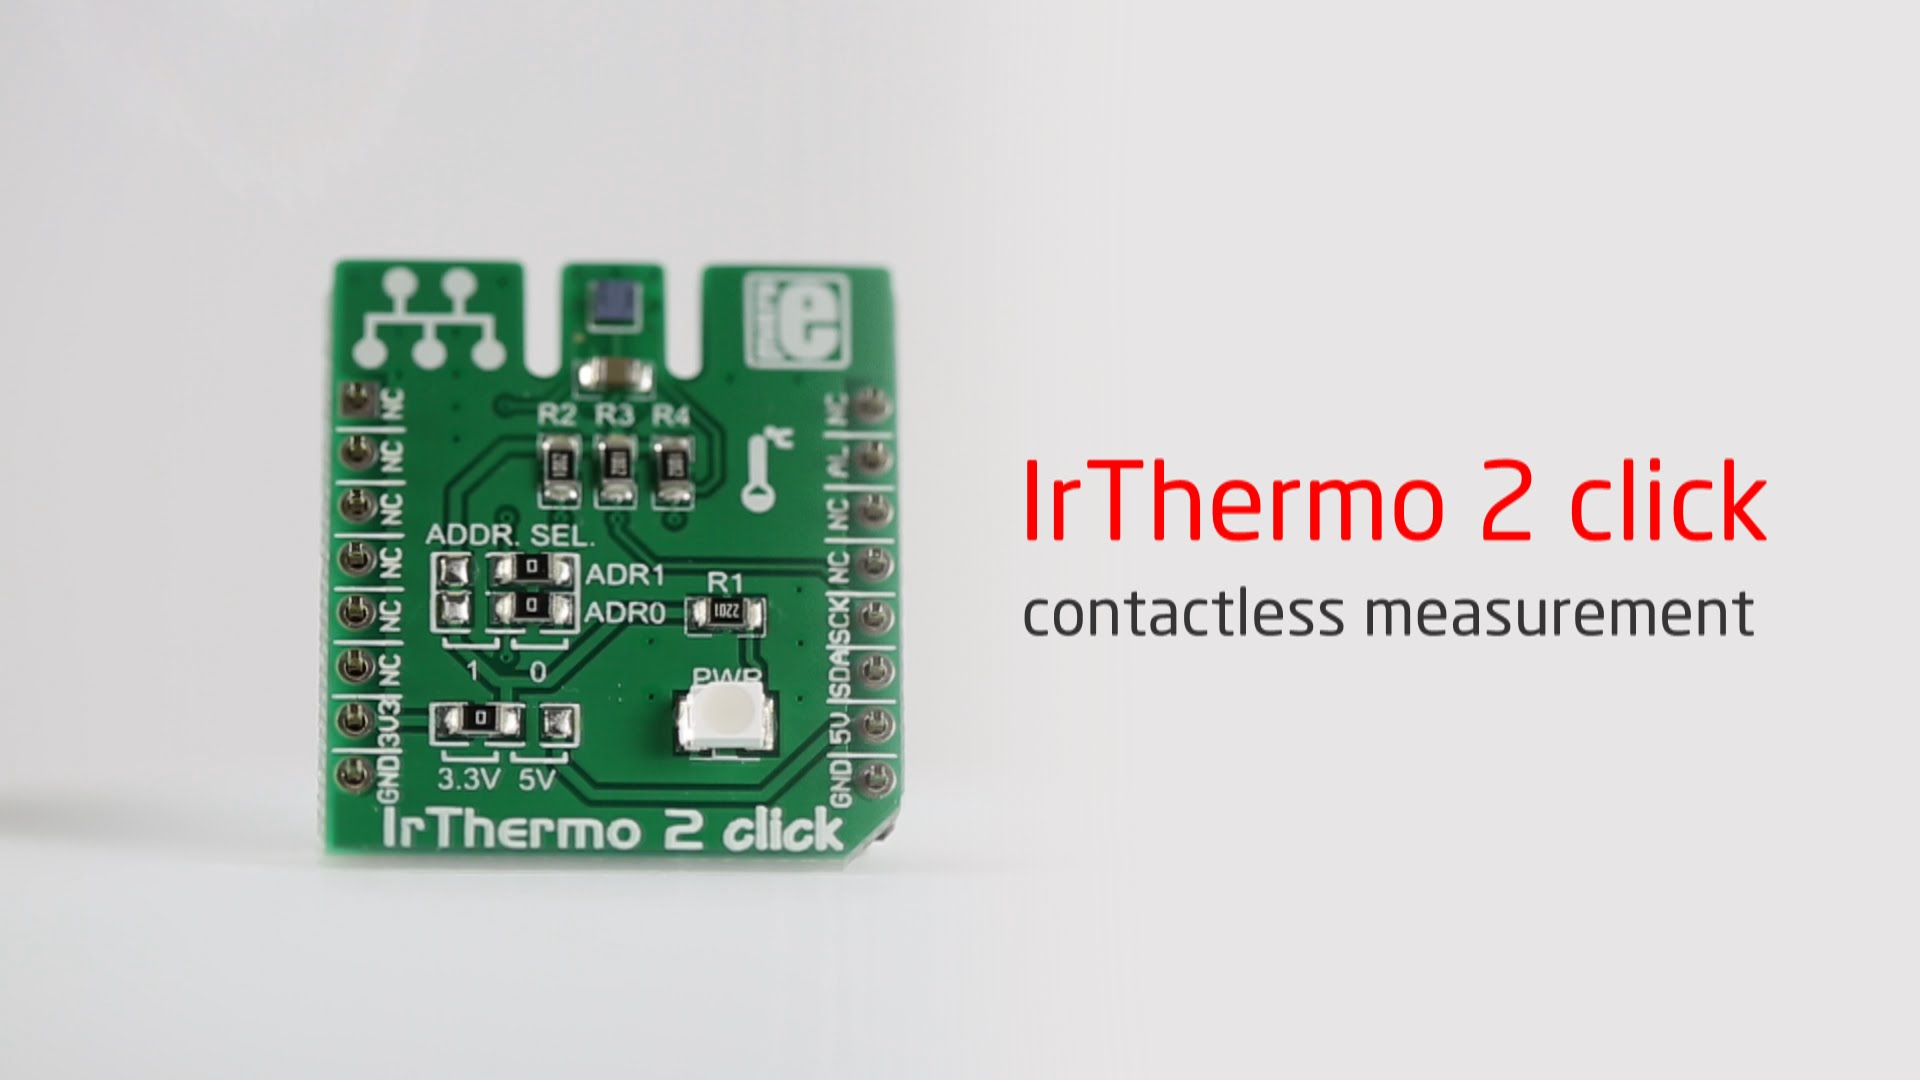 IrThermo 2 click released